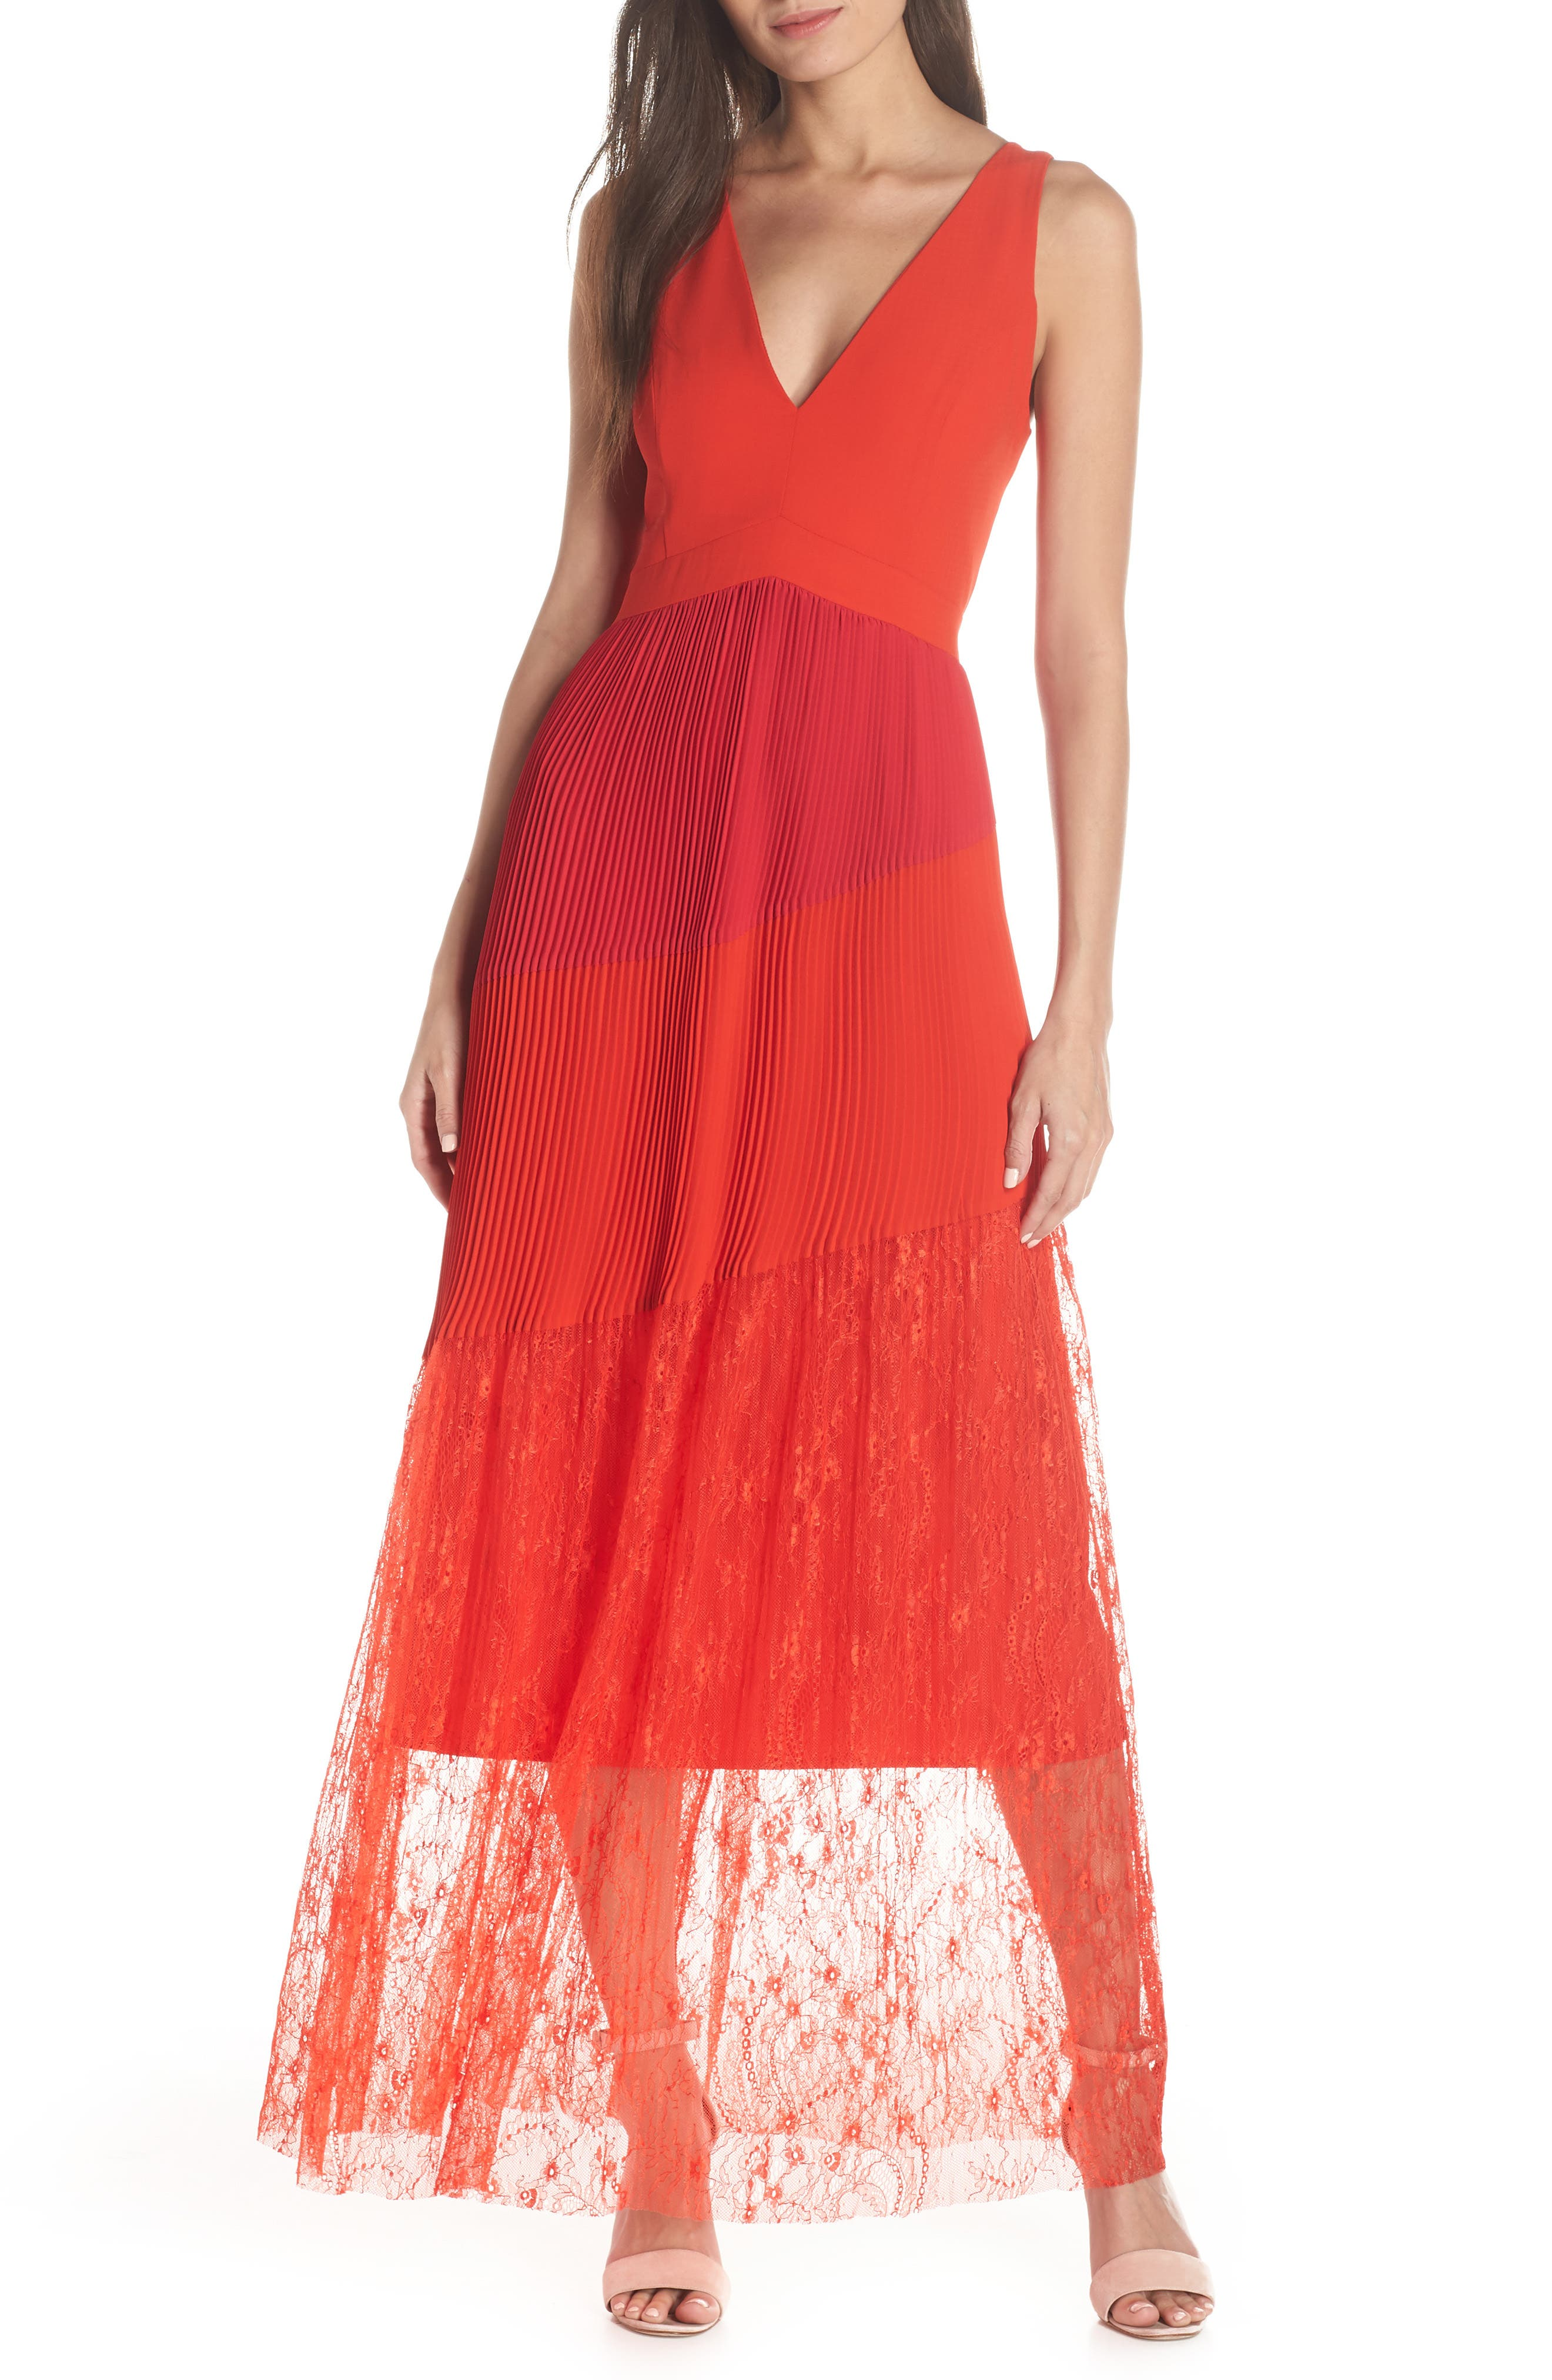 Harlyn Pleated Mix Media Colorblock Evening Dress, Red